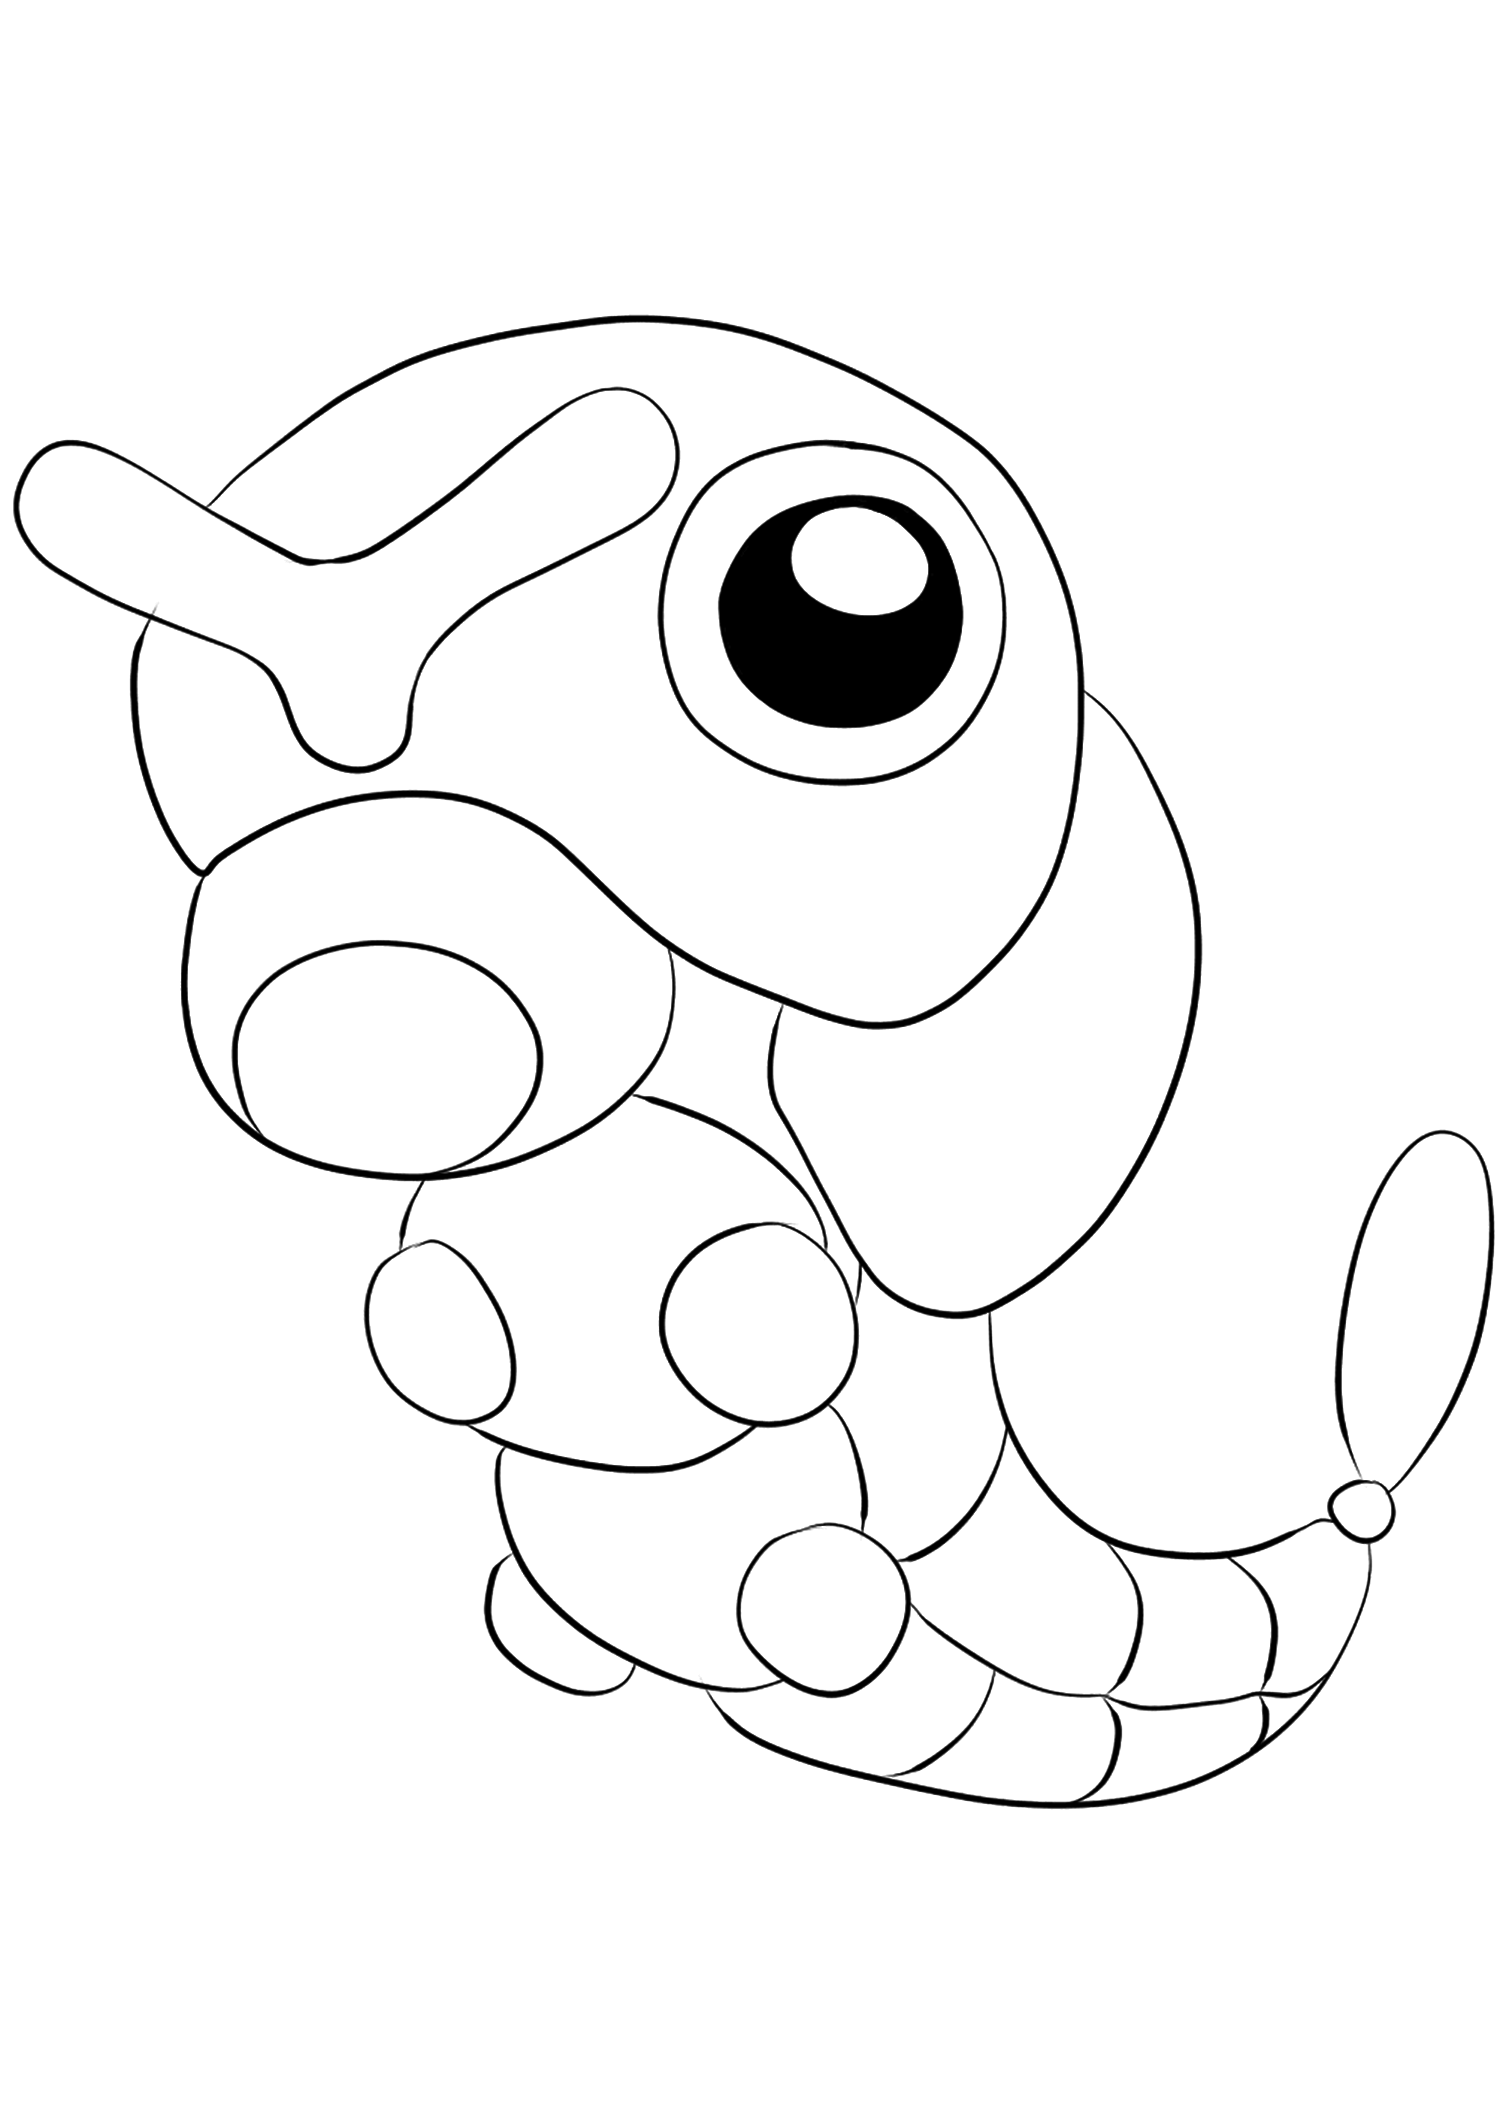 Chenipan (No.10)Coloriage de Chenipan (Caterpie), Pokémon de Génération I, de type : InsecteOriginal image credit: Pokemon linearts by Lilly Gerbil'font-size:smaller;color:gray'>Permission: All rights reserved © Pokemon company and Ken Sugimori.